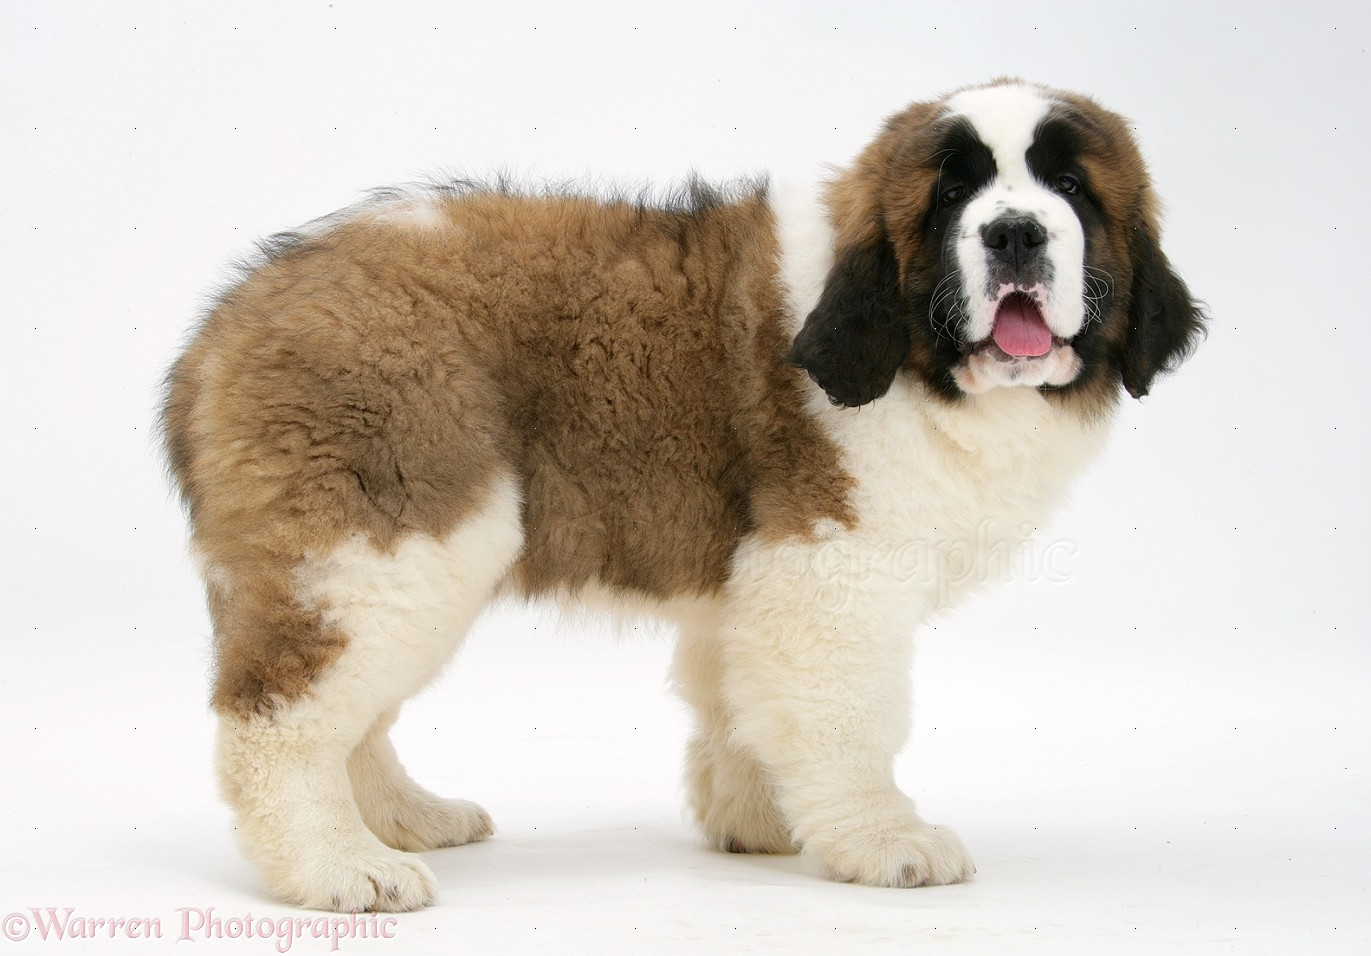 Wp27217 saint bernard puppy vogue standing